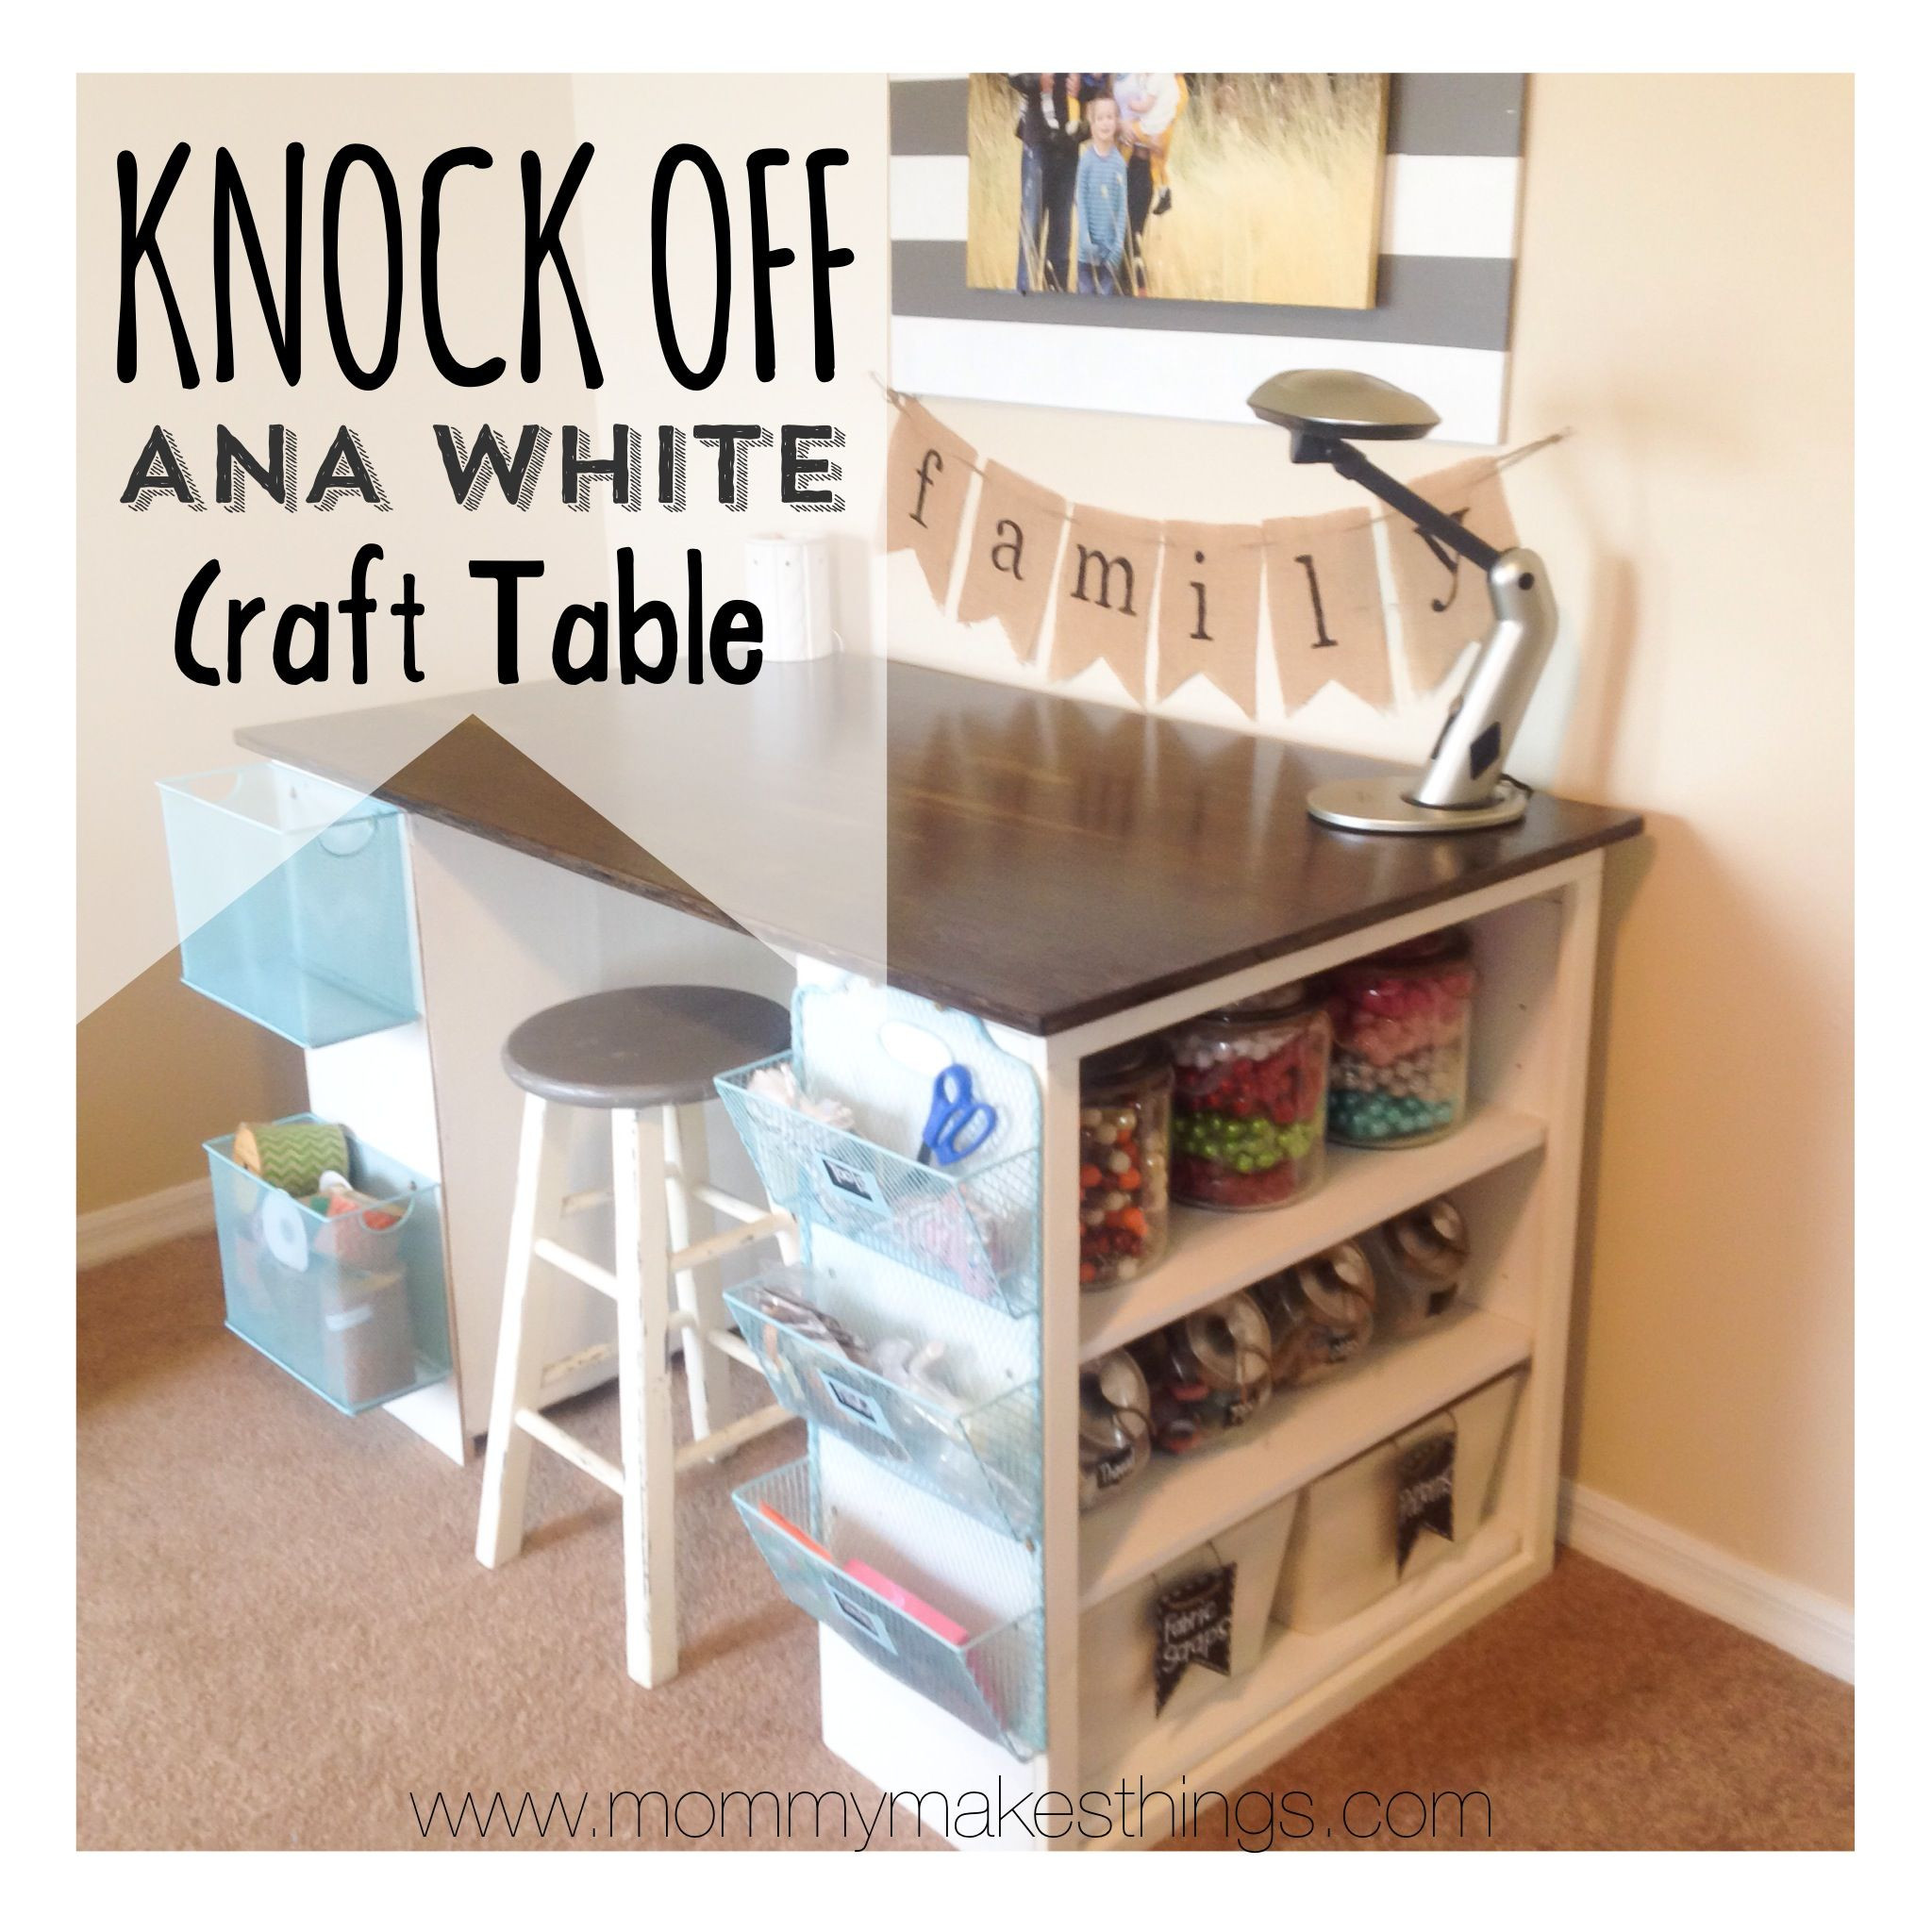 Best ideas about DIY Kids Craft Table . Save or Pin DIY Ana White Craft Table knock off for under $75 By Now.